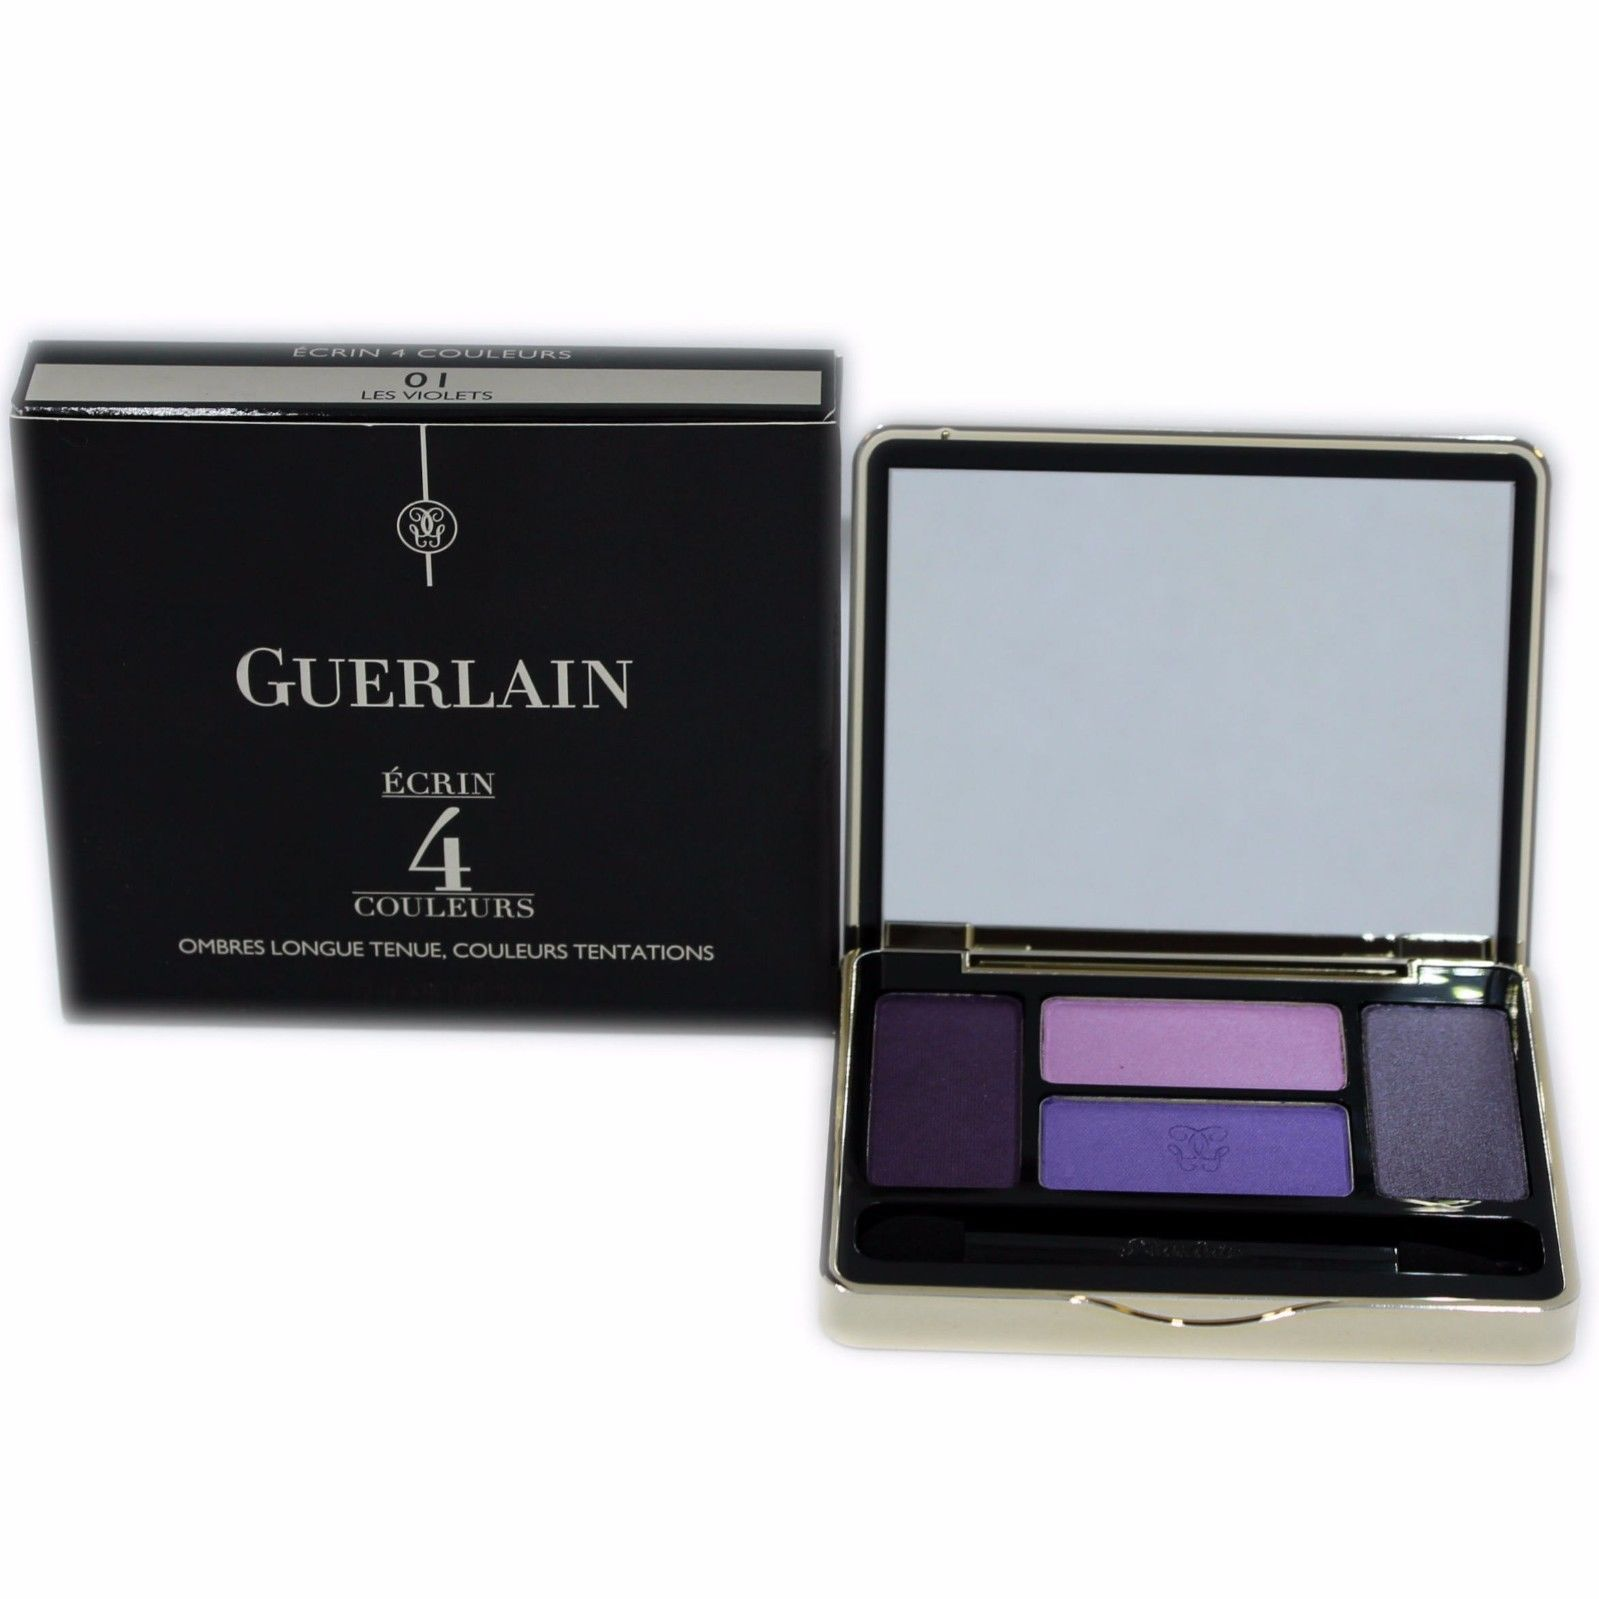 Primary image for GUERLAIN ECRIN 4 COULEURS LONG-LASTING EYESHADOWS 7.2G #01 LES VIOLETS-411456